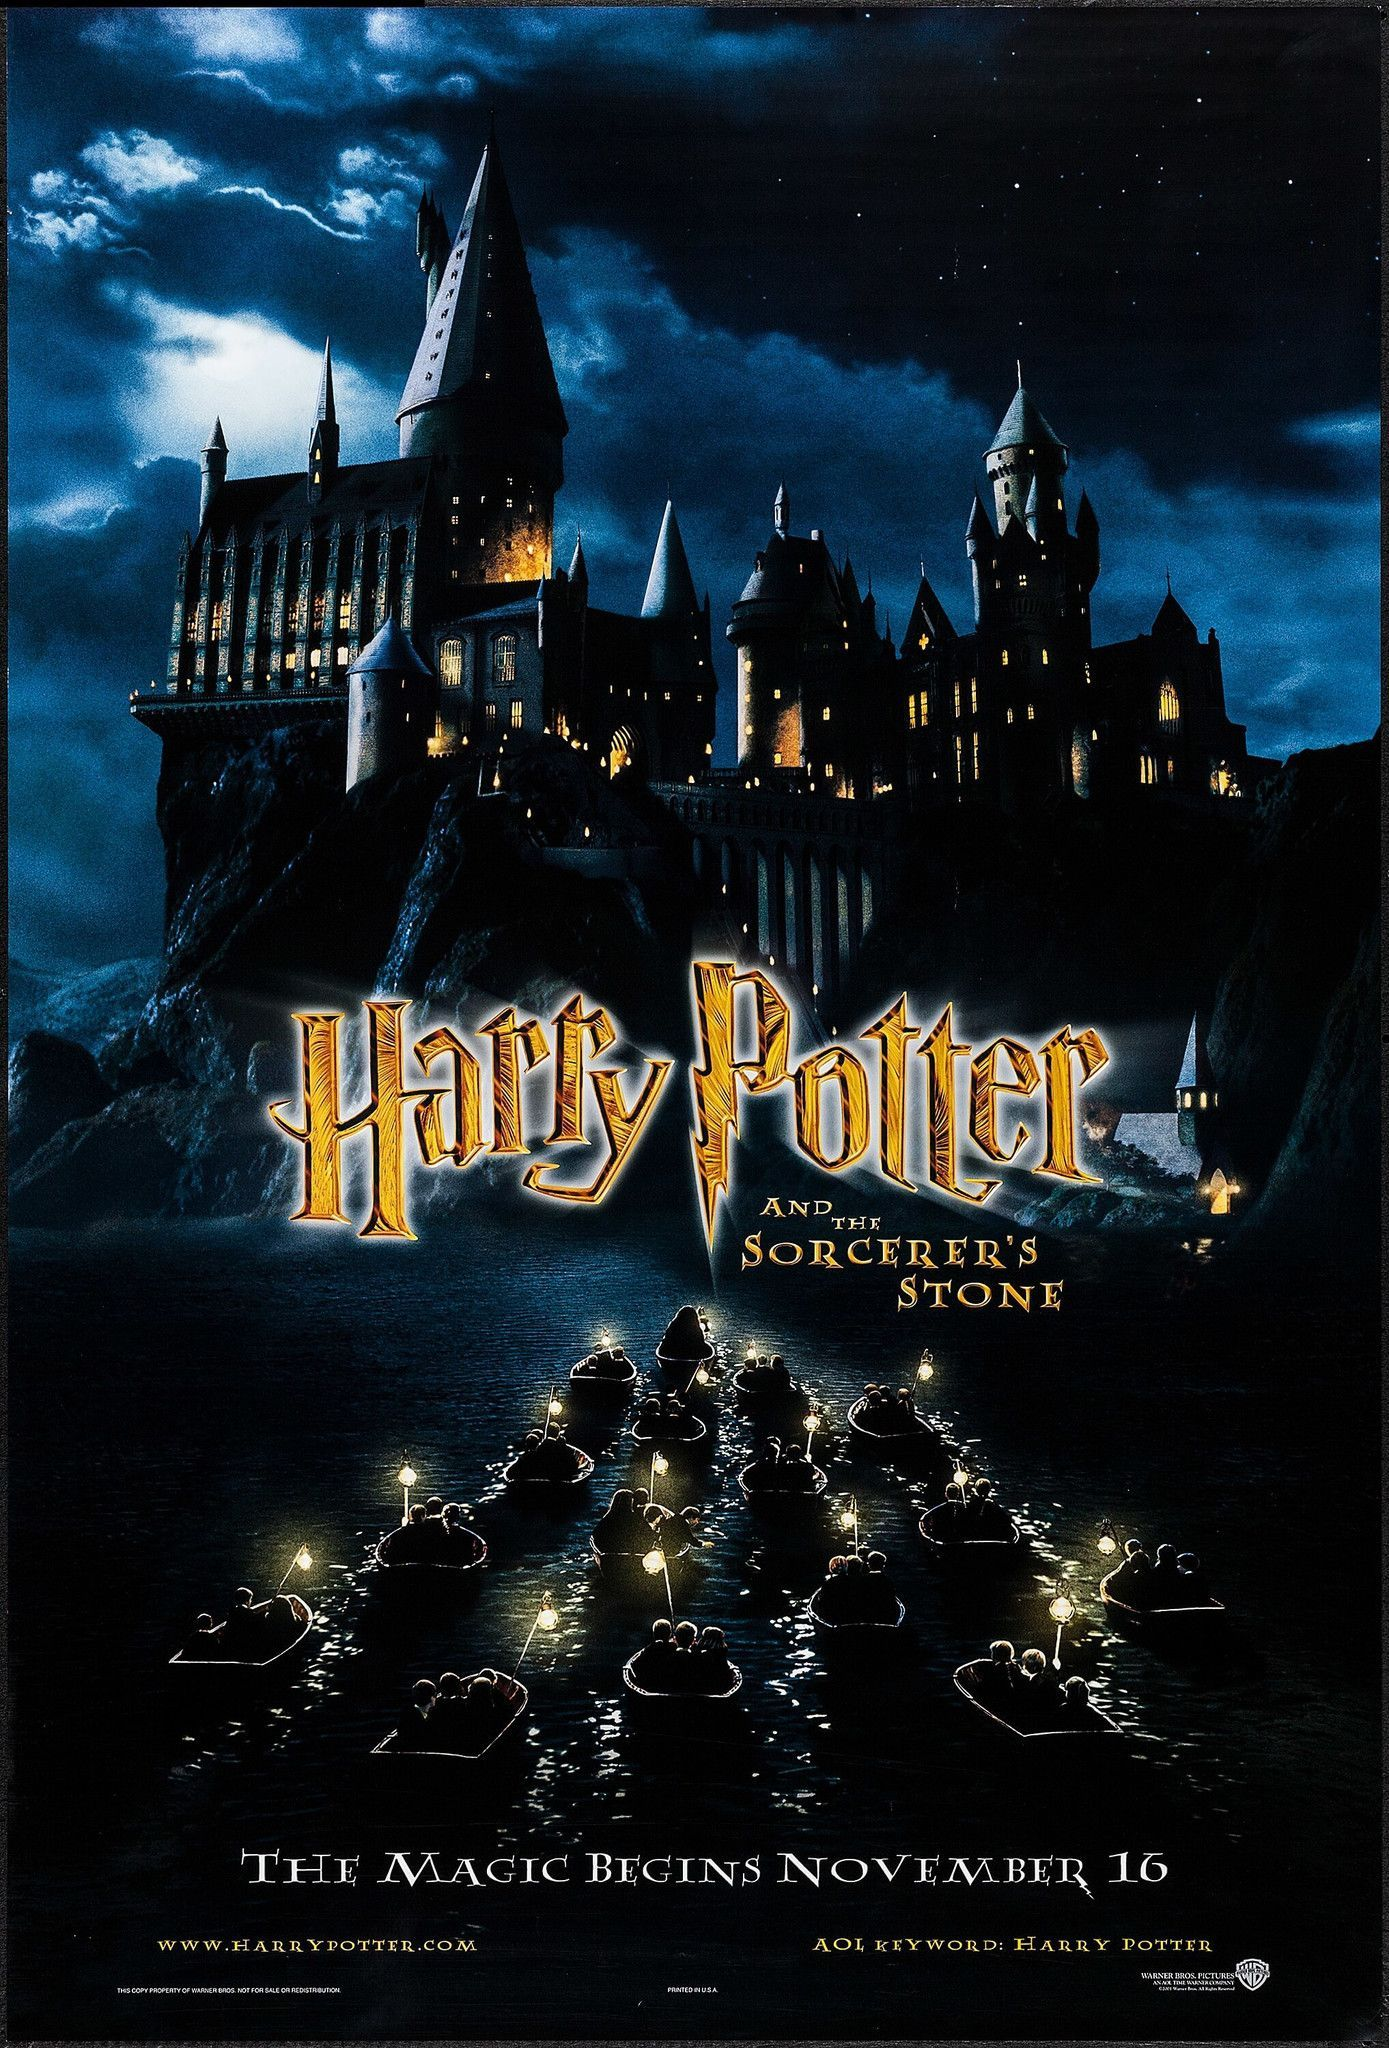 Harry Potter And The Sorcerer S Stone Original Movie Poster Harry Potter Poster Harry Potter Movie Posters Harry Potter Movies